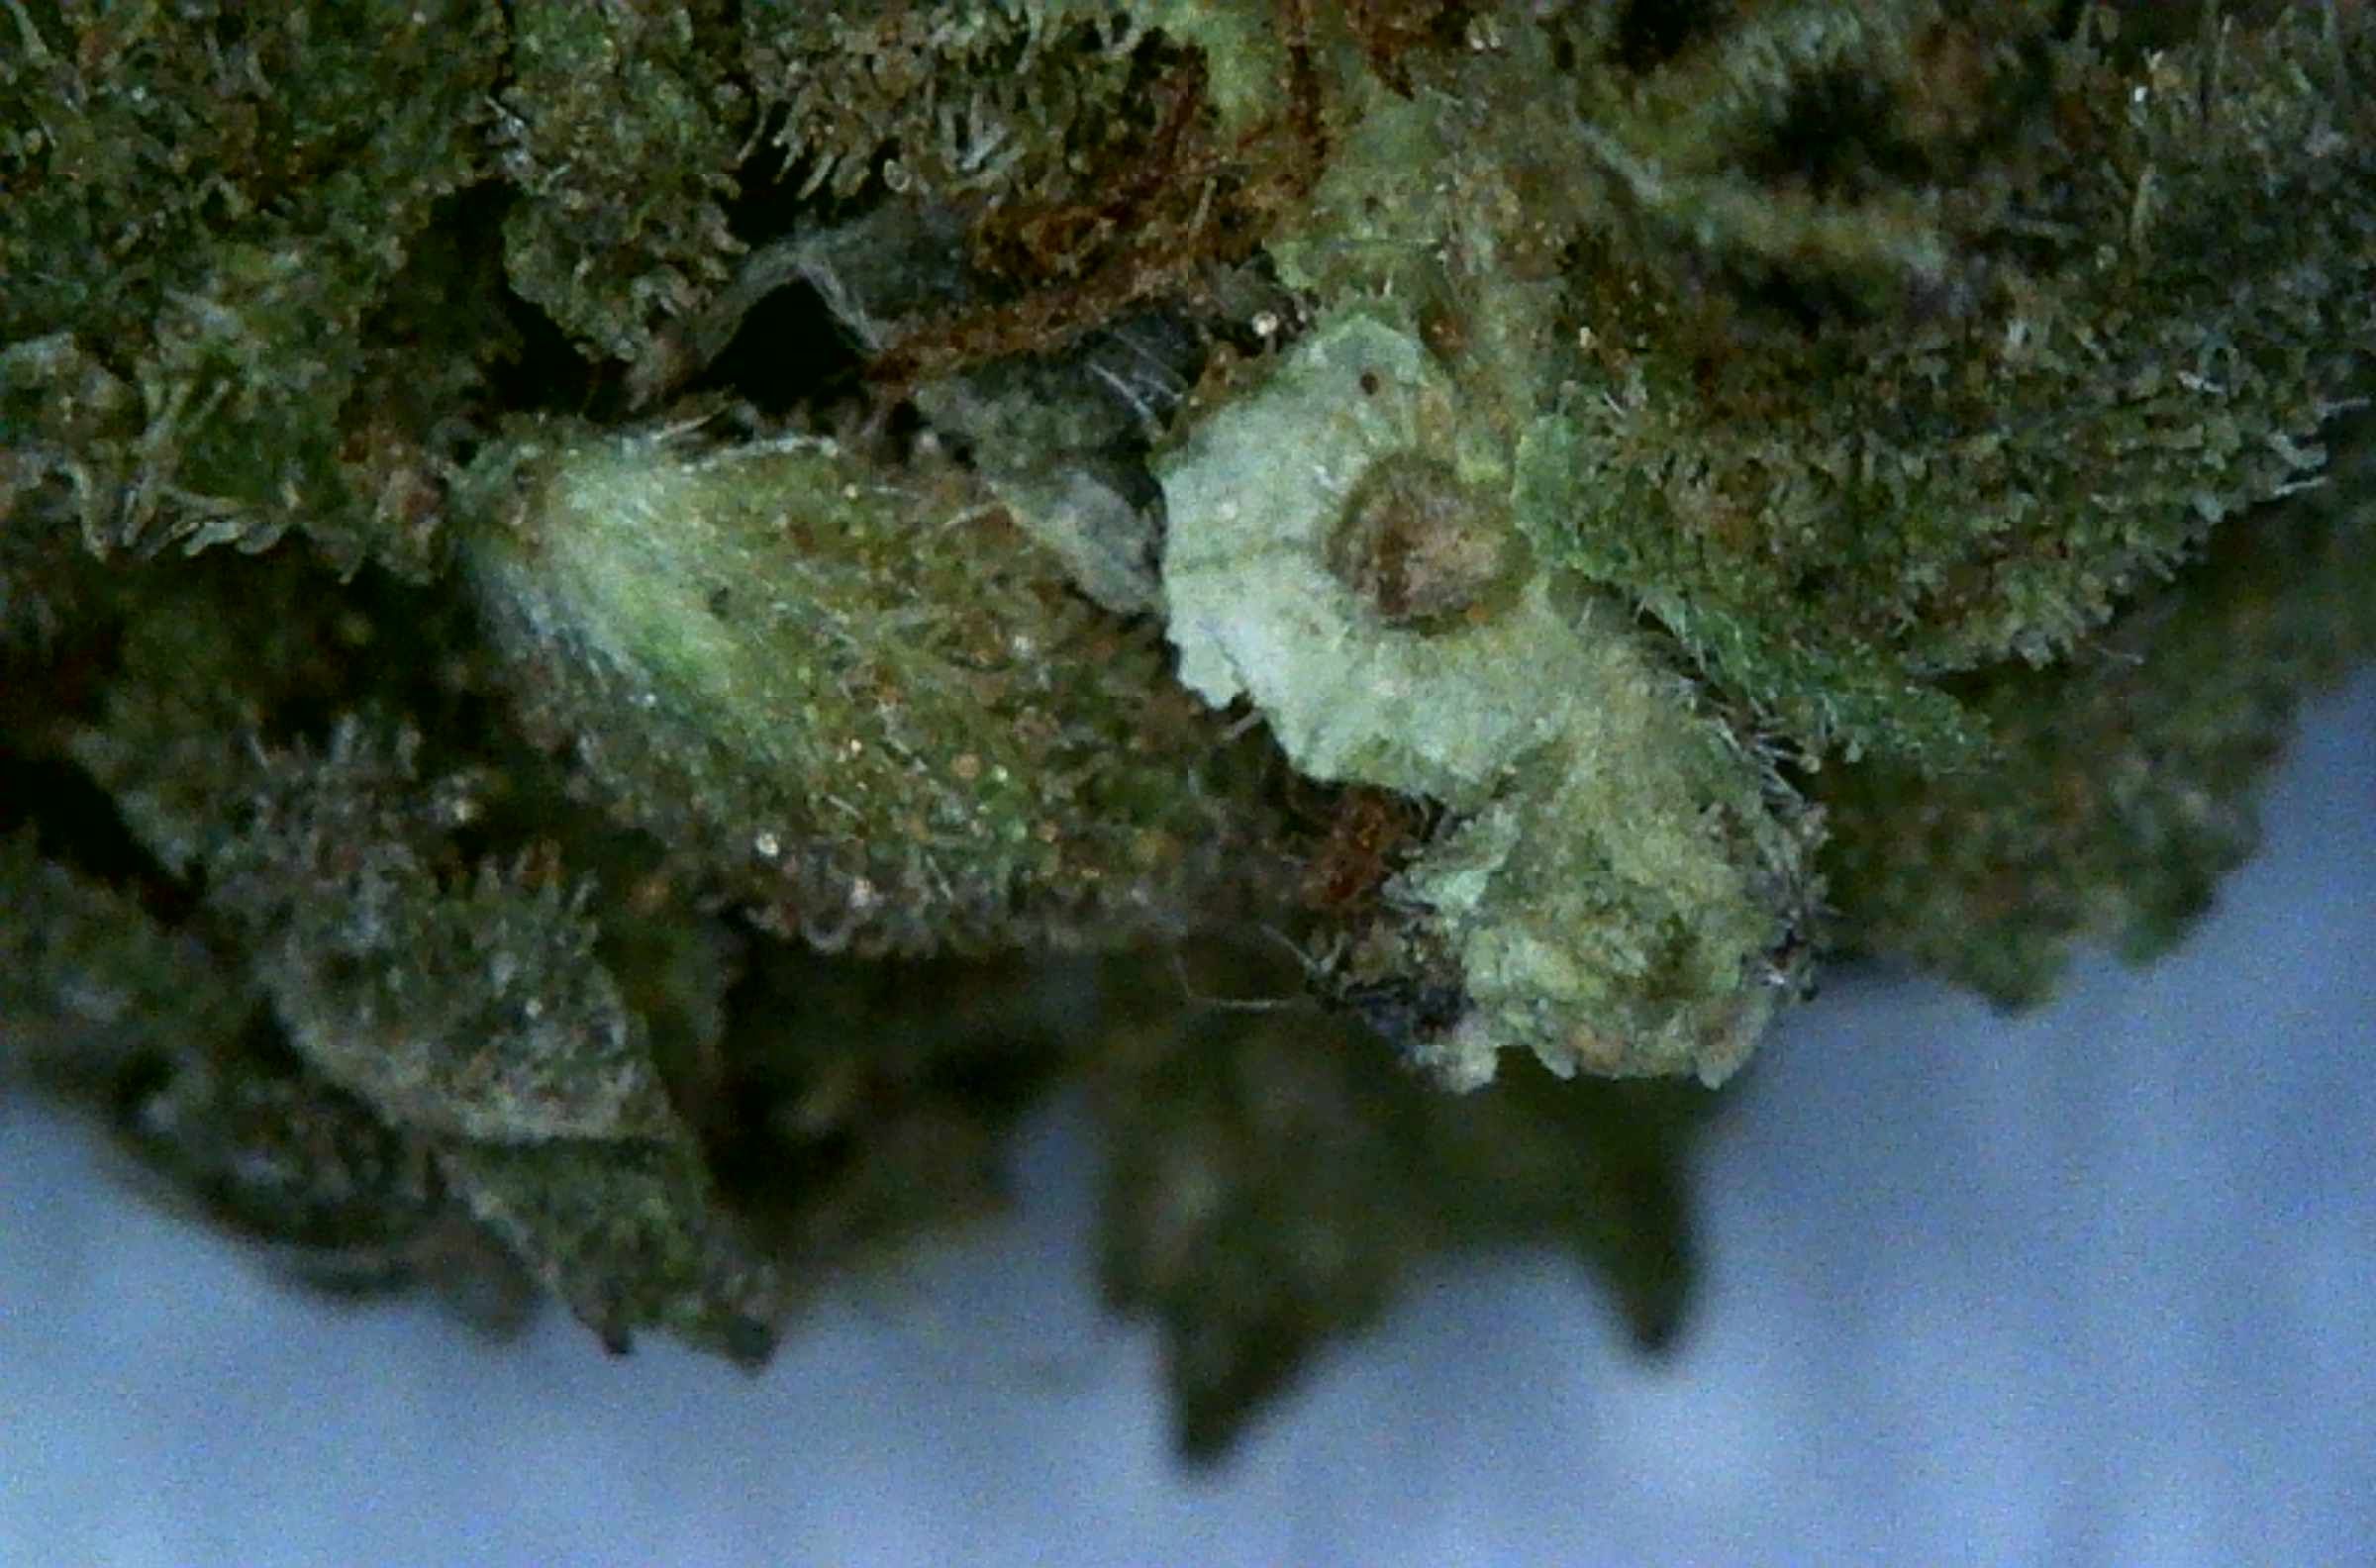 Is This Mold? | Grasscity Forums - The #1 Marijuana ...